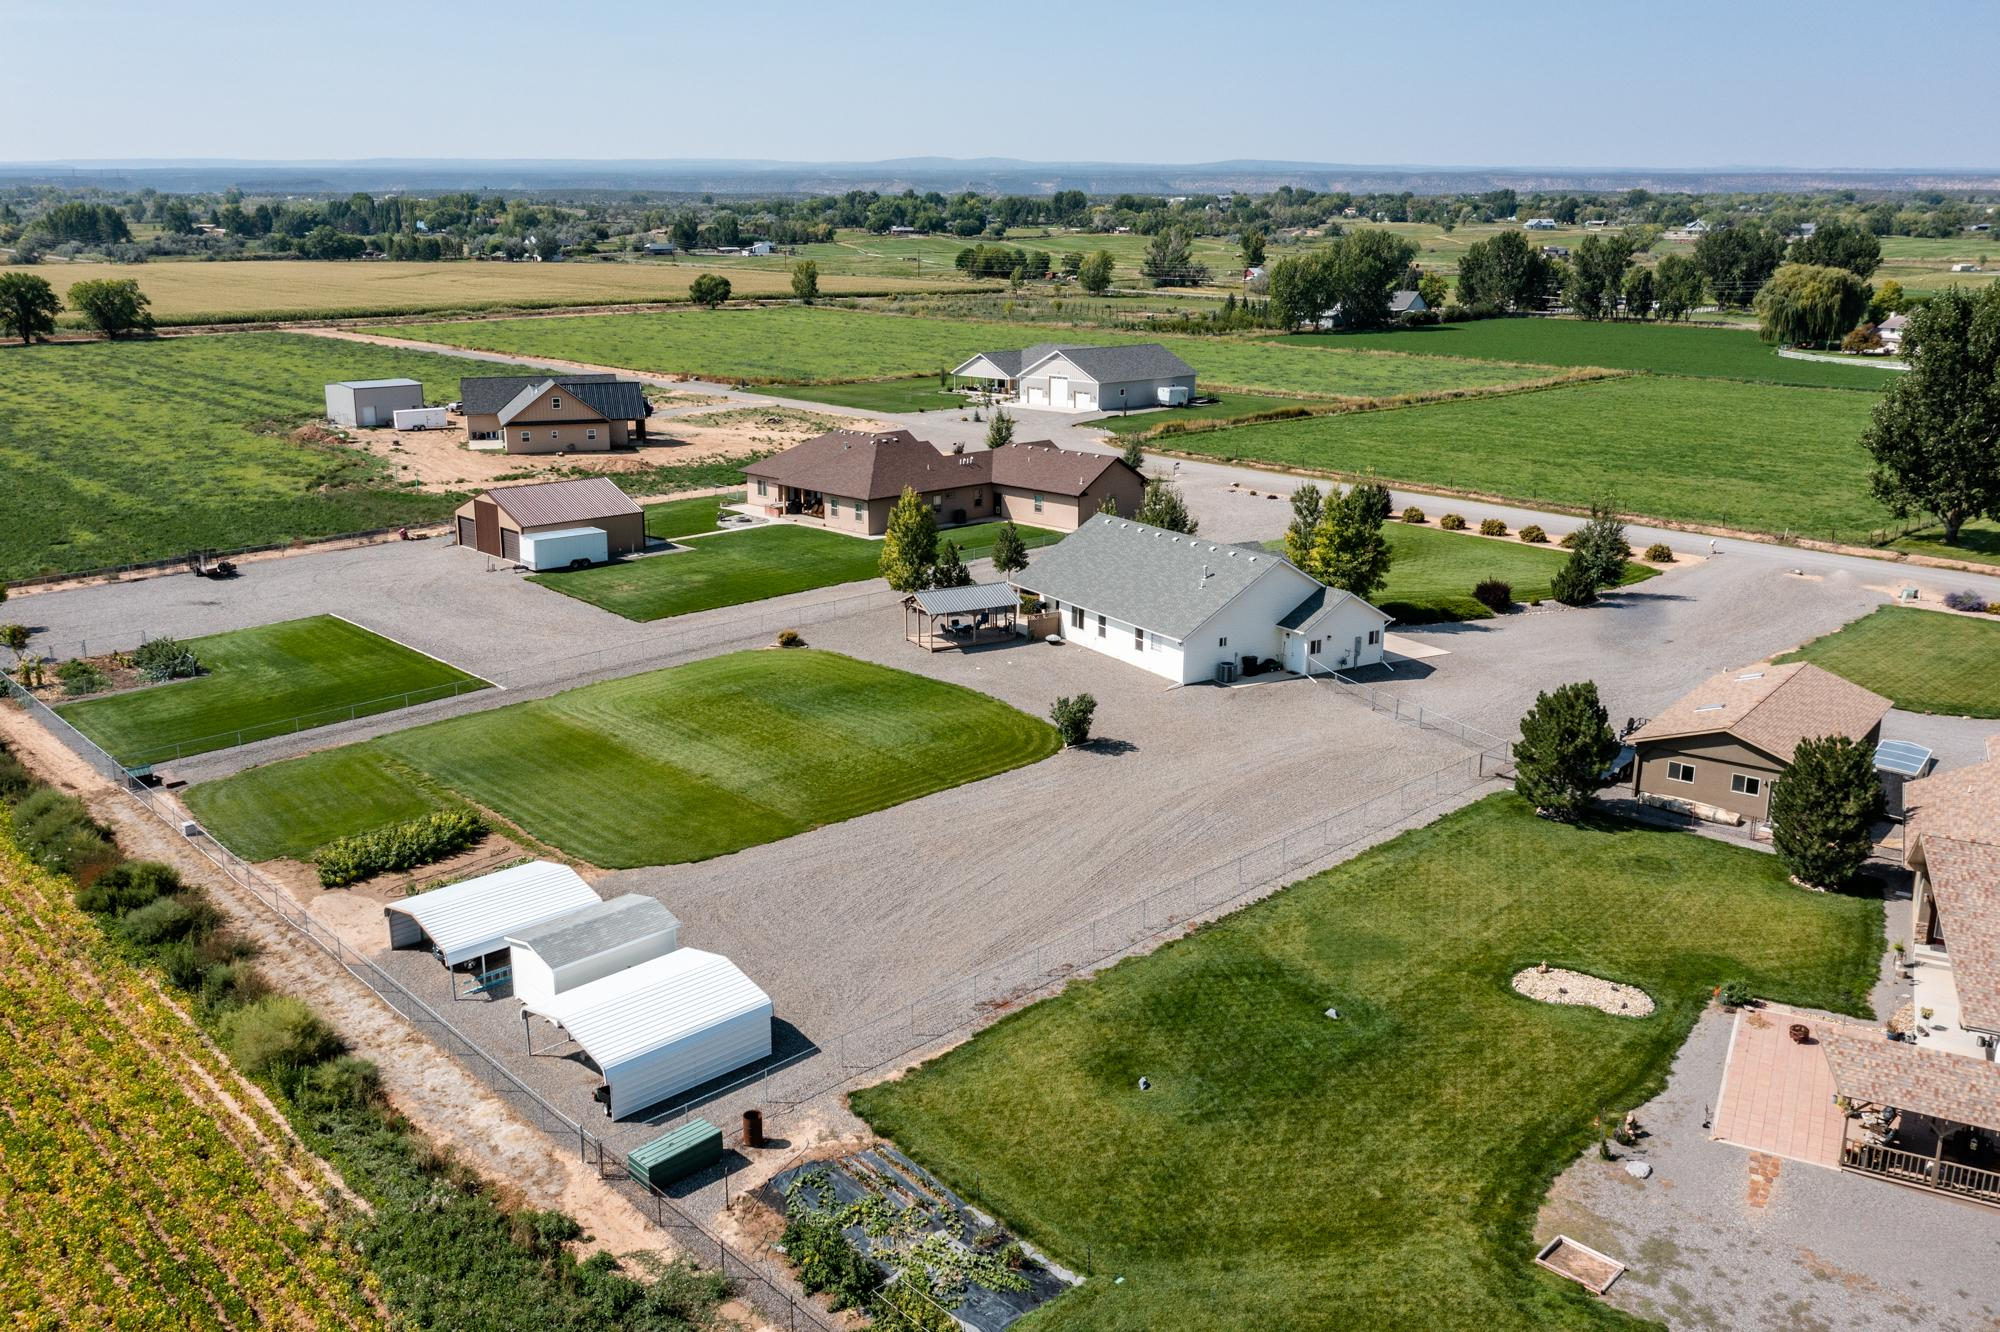 Aerial View Side of Property - 15552 6120 Rd Montrose, CO 81403 - Atha Team Country Real Estate